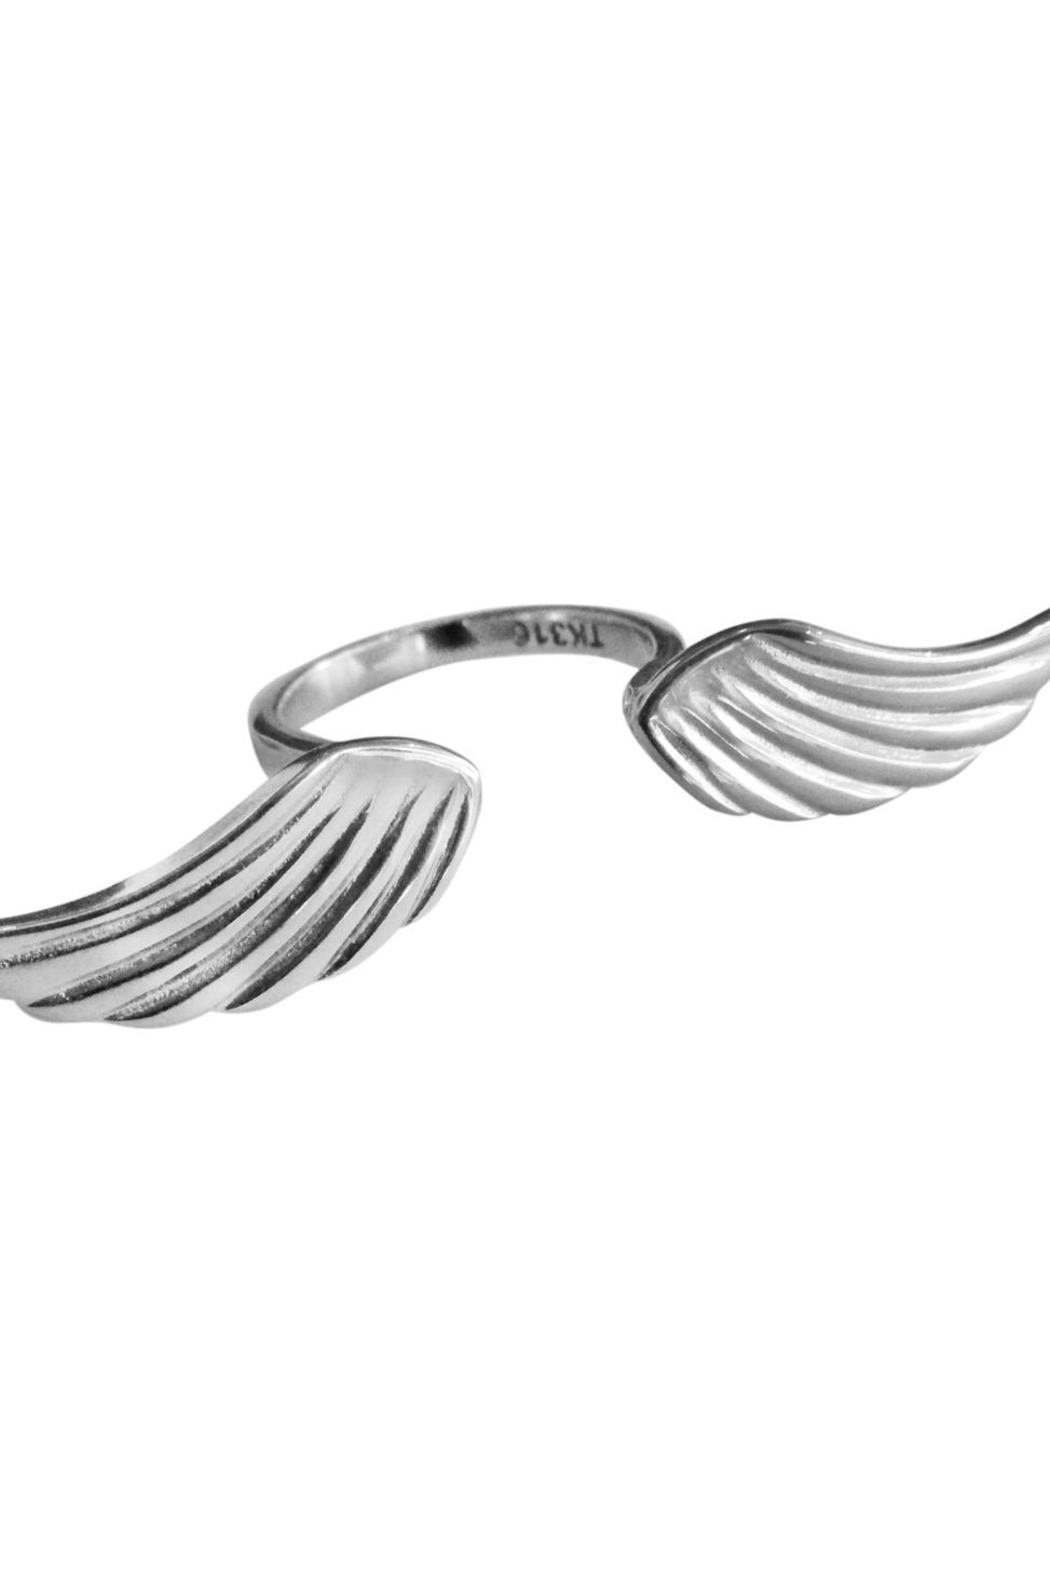 Malia Jewelry Double Wing Ring - Main Image